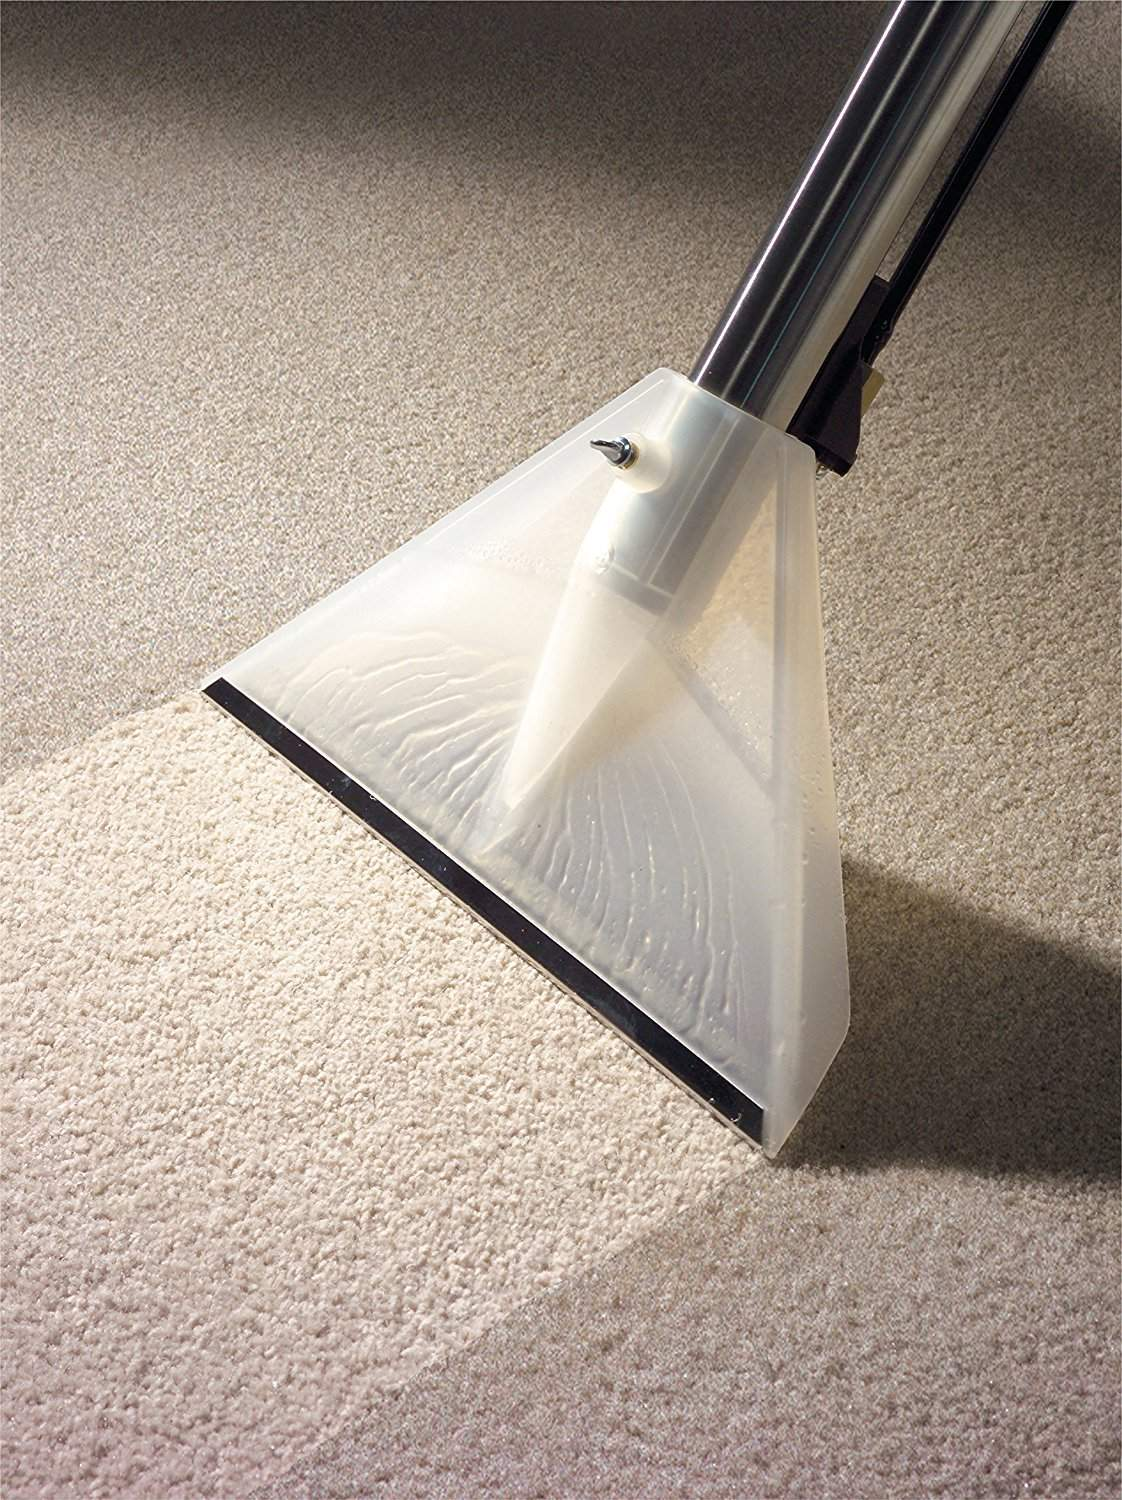 Important Methods & Techniques To Dry The Carpet In Limited Time